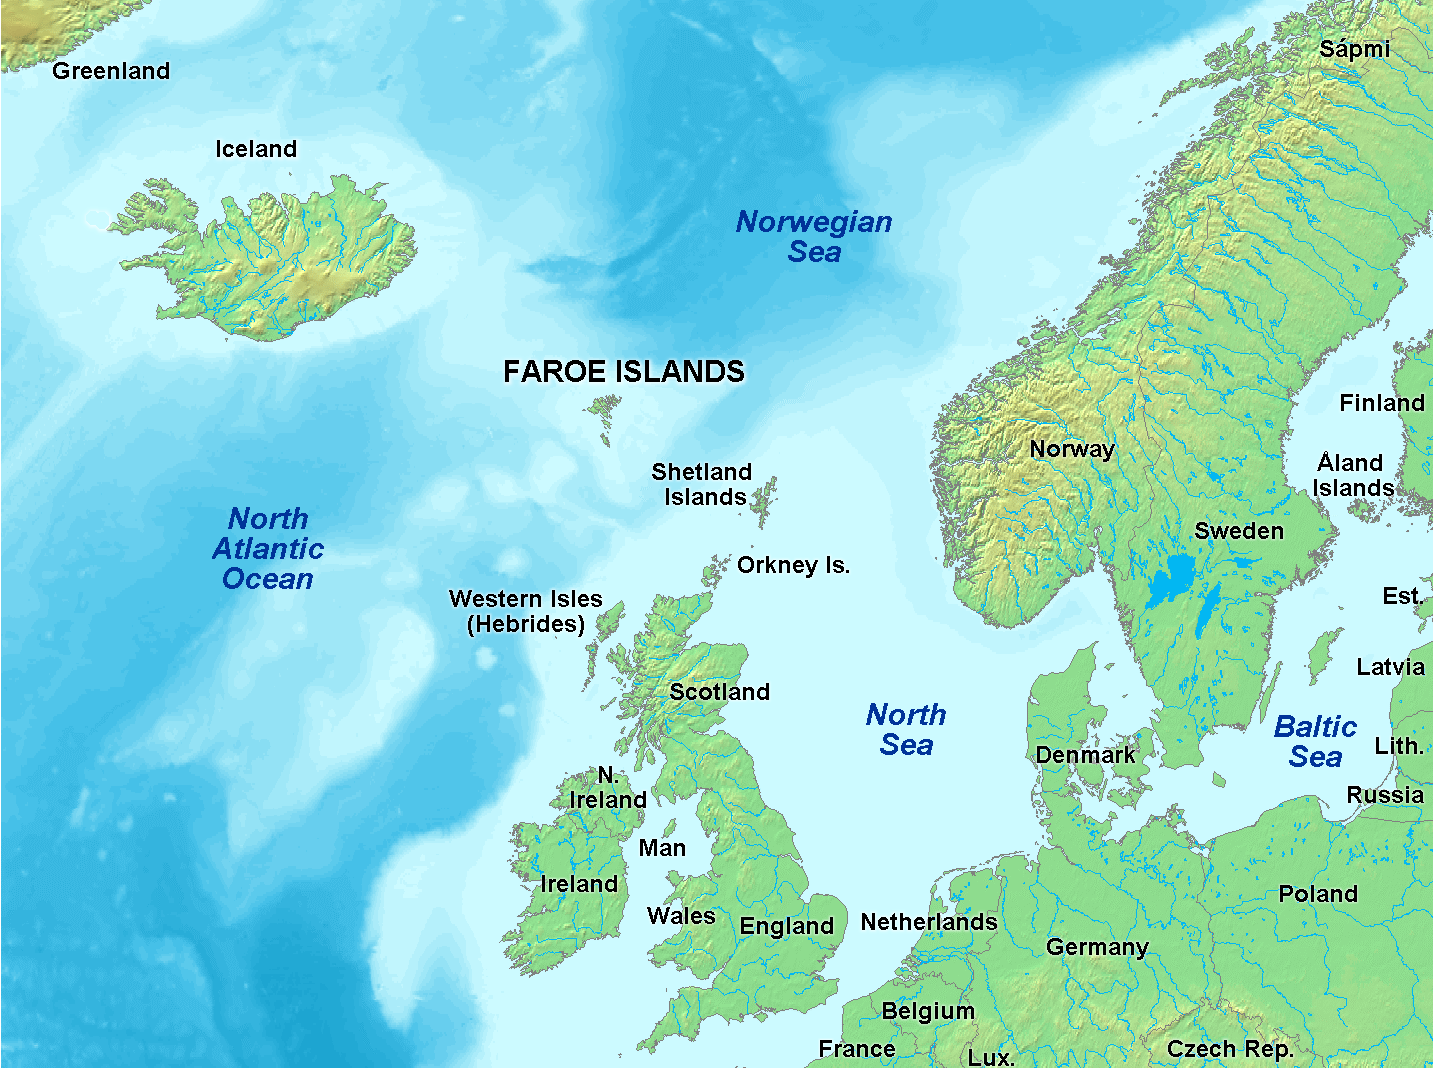 Atlas Of The Faroe Islands Wikimedia Commons - Aland islands political map